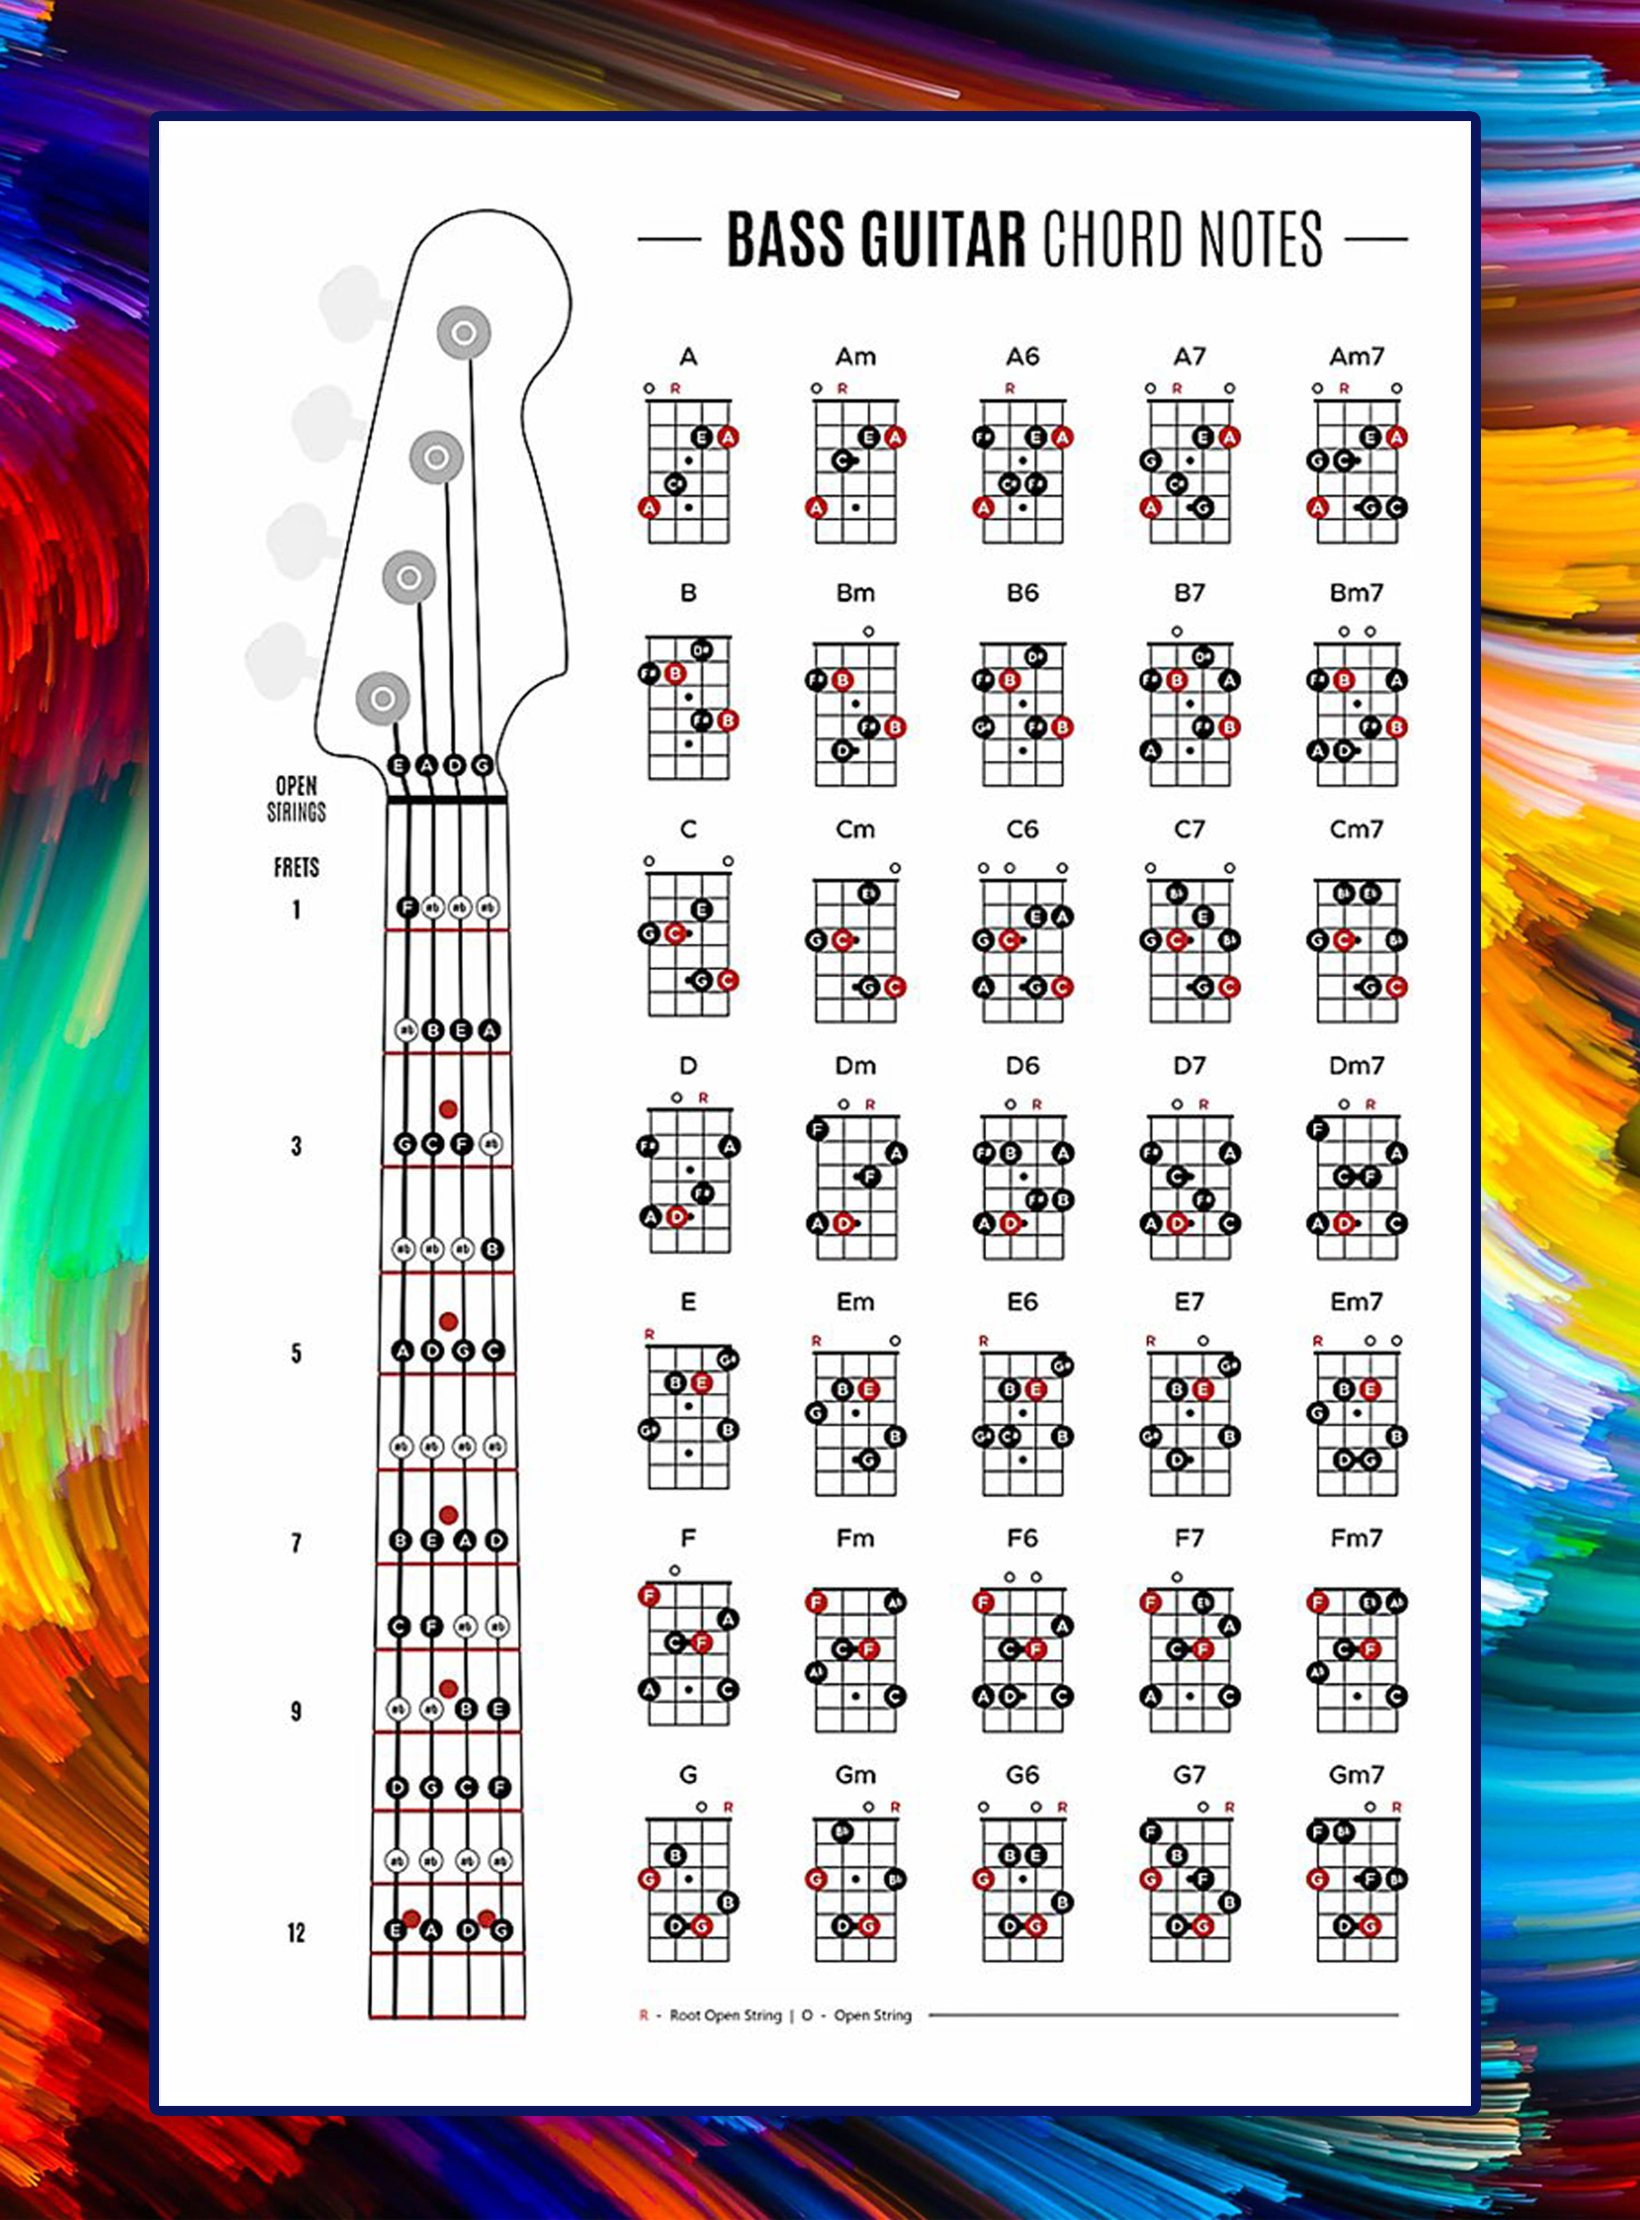 Bass guitar chord notes poster - A3